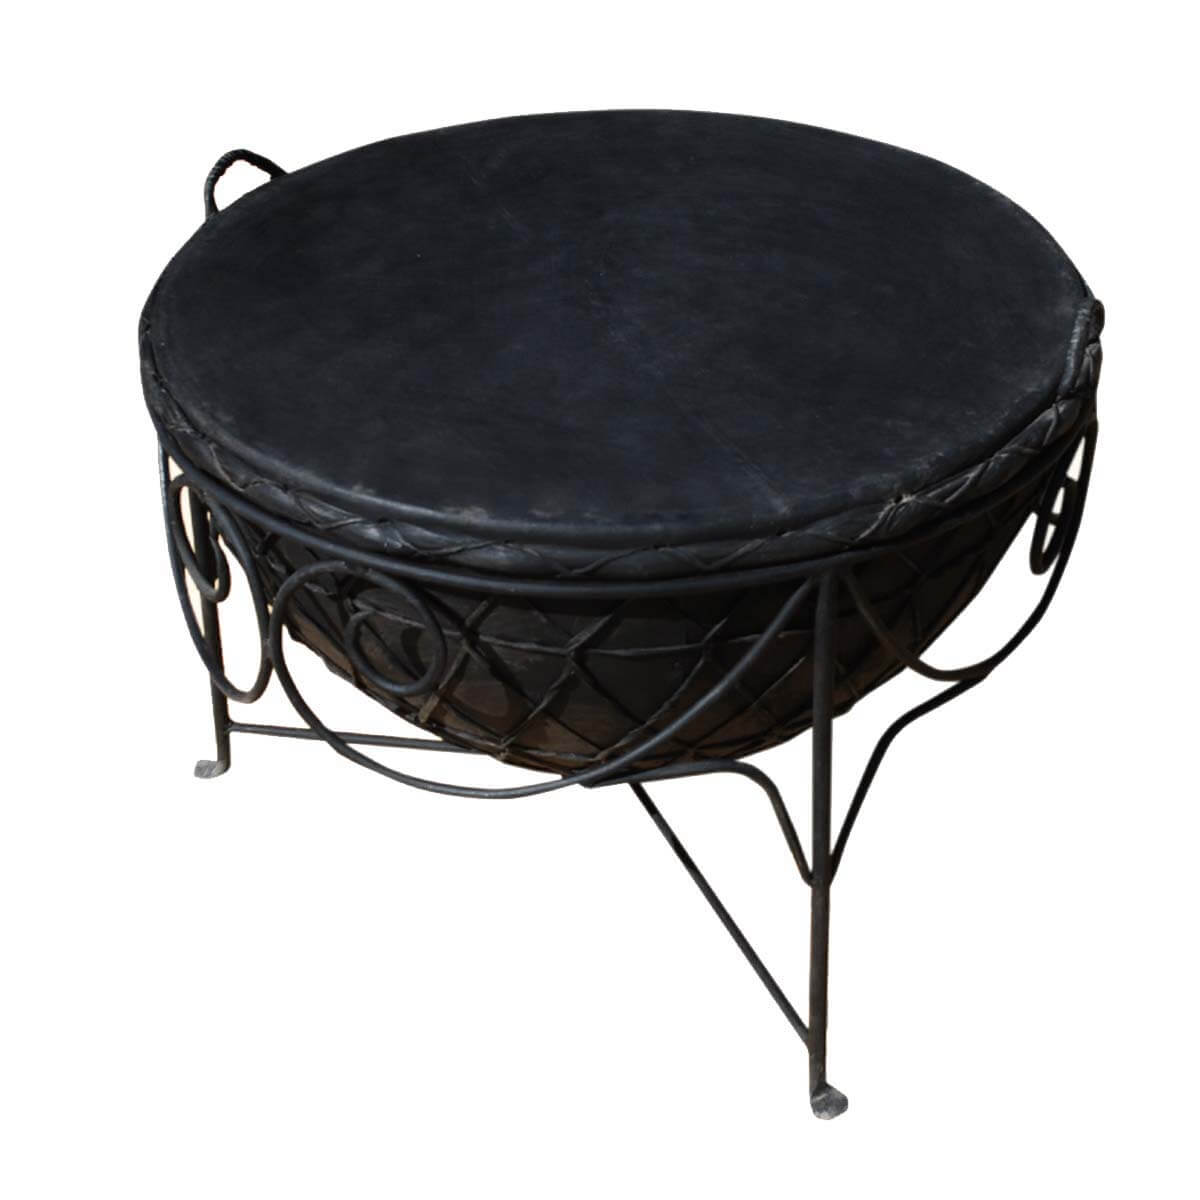 Black Wrought Iron Leather Round Tabla Drum Coffee Table